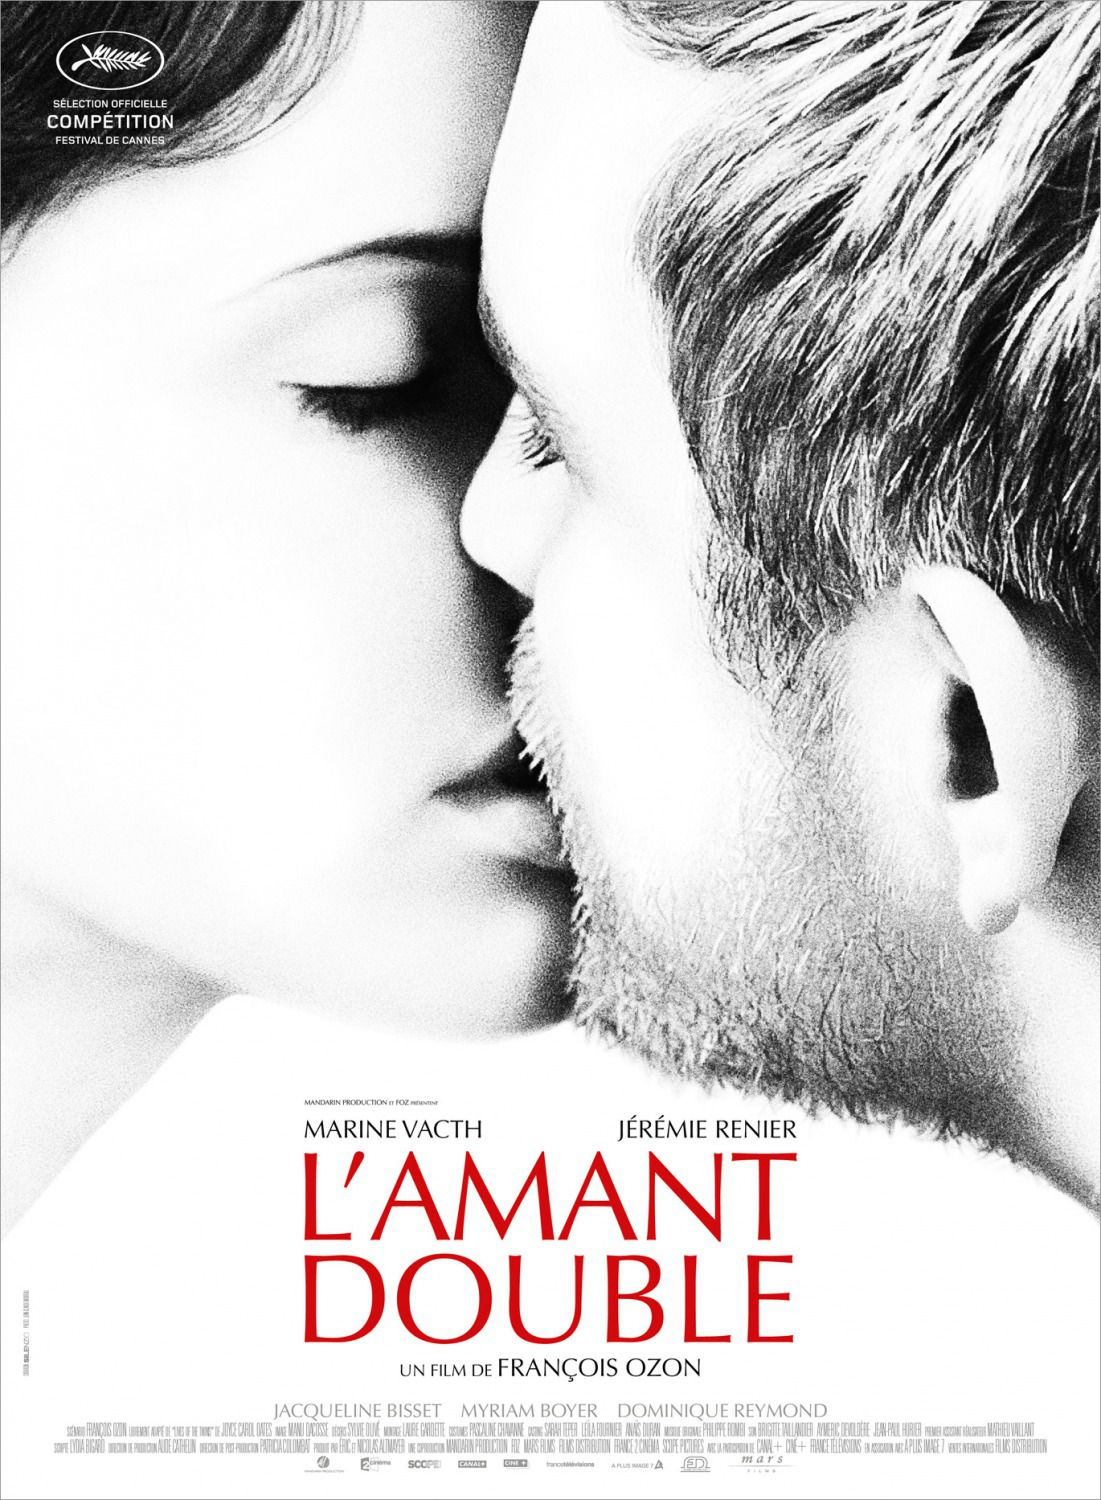 Amant Double - Double Lover by Francois Ozon - film poster